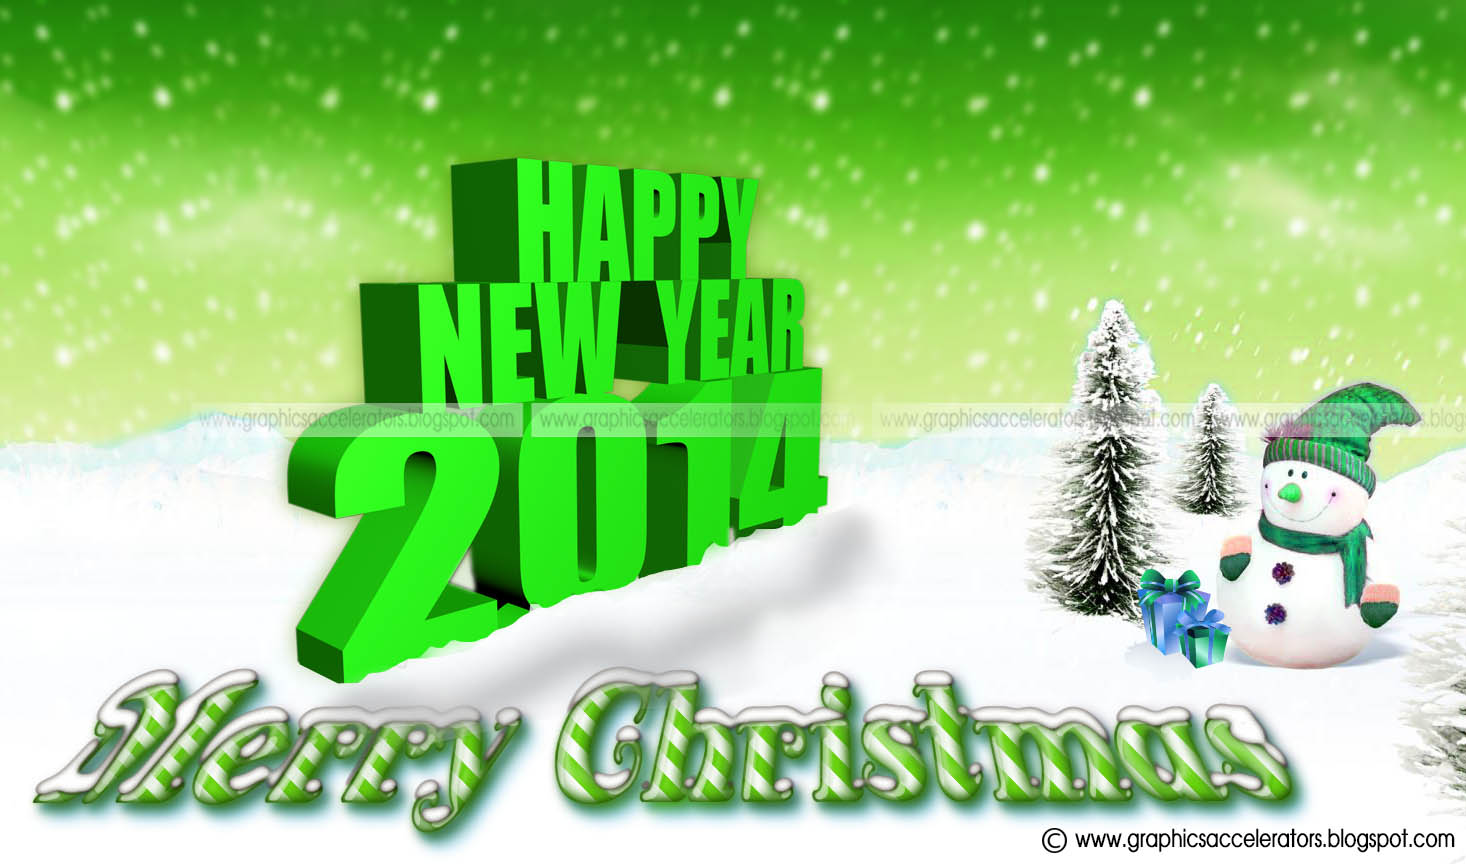 http://1.bp.blogspot.com/-DvavHXyHRqI/UR0cKW8XzbI/AAAAAAAAAWk/dDMWf-rTmn4/s1600/Merry-Christmas-and-Happy-New-Year-2014%20greetings.jpg